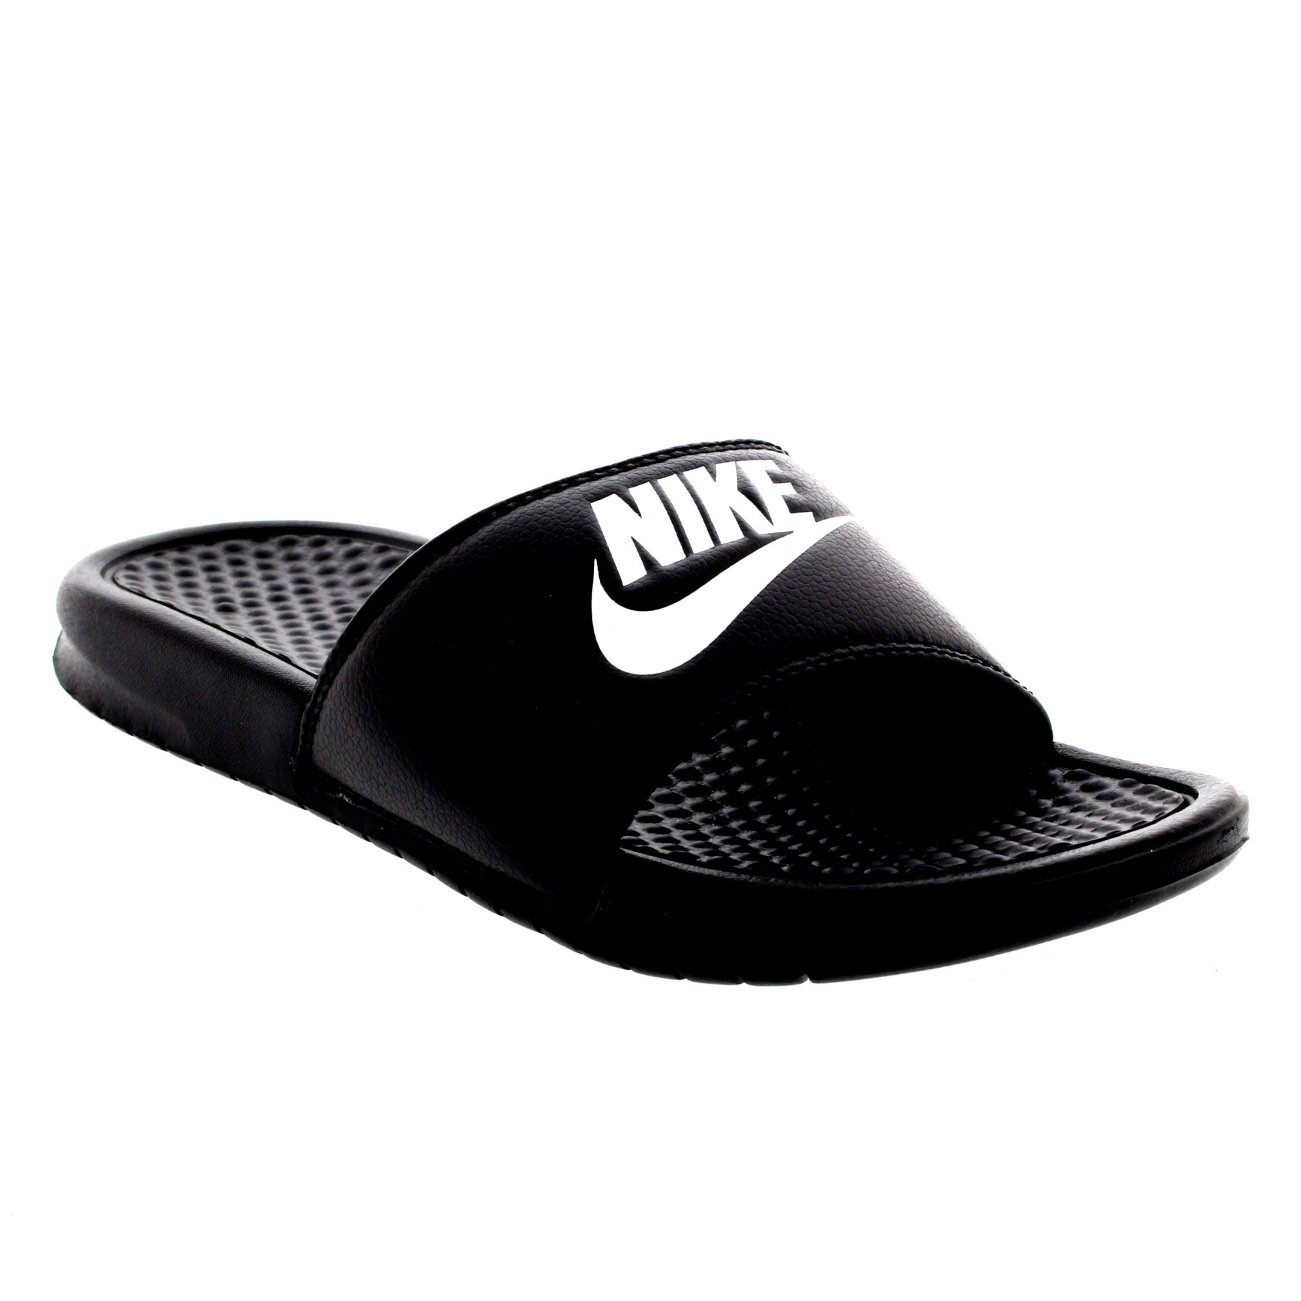 NIKE Mens Benassi JDI Lightweight Slides Beach Holiday Sandals Summer - Black/White - 10